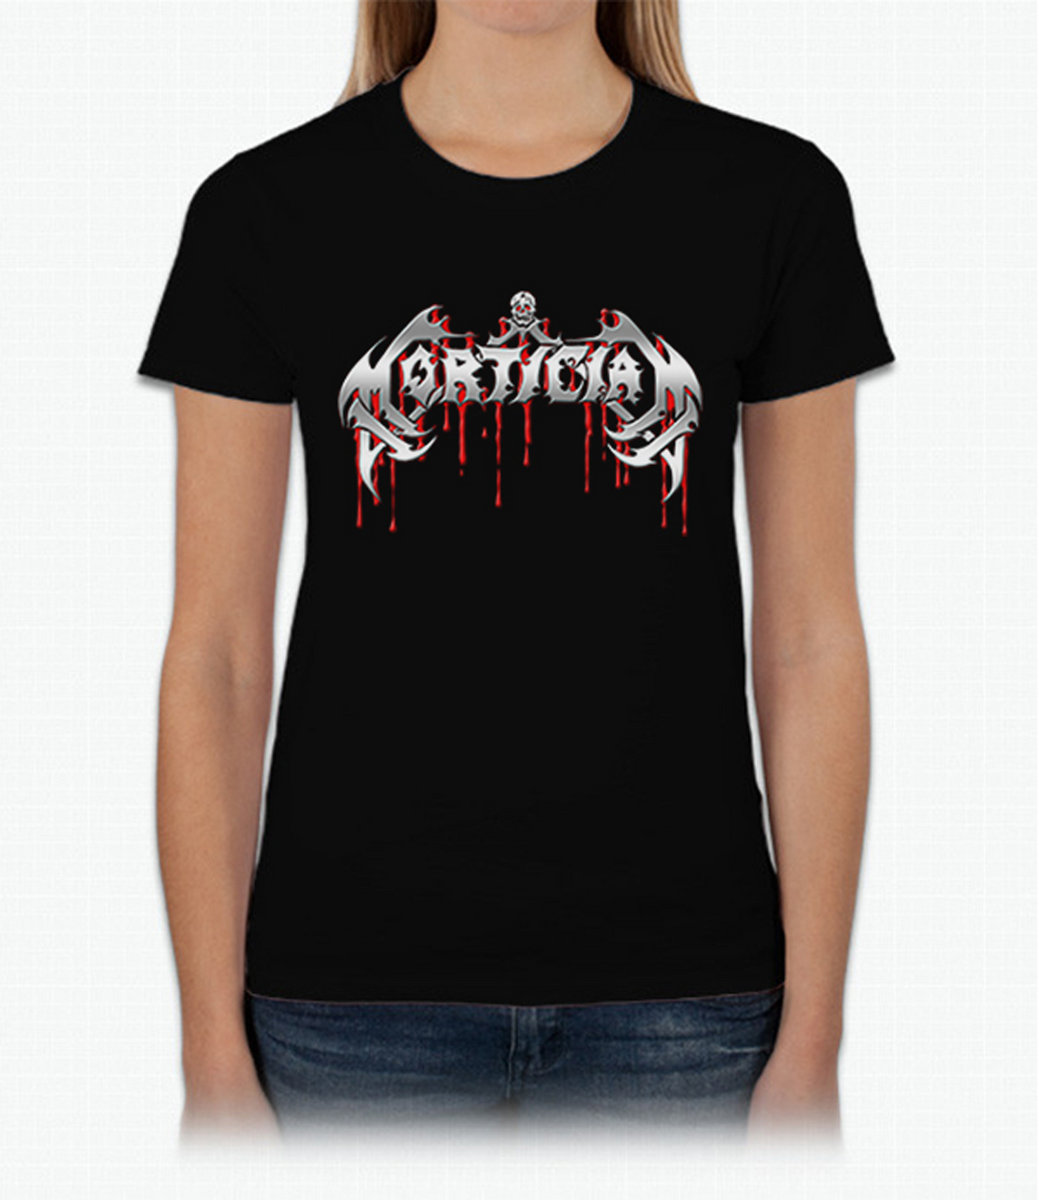 Silver Blood Logo Girly T Shirt From Mortician